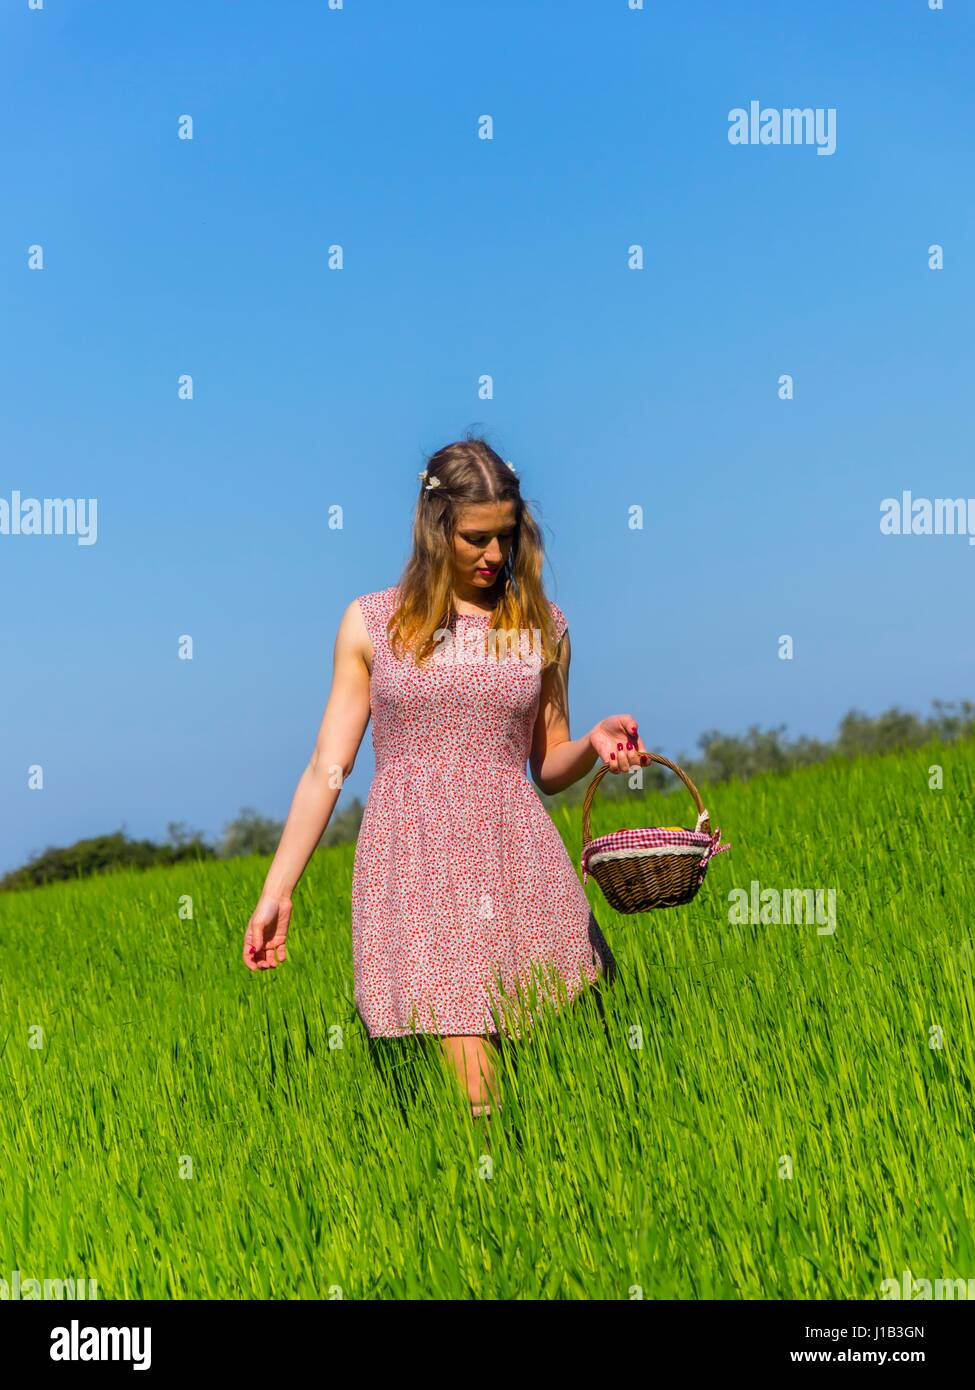 Country-girl carrying carry basket walking towards camera front frontal view slow walk looking down vertical format - Stock Image